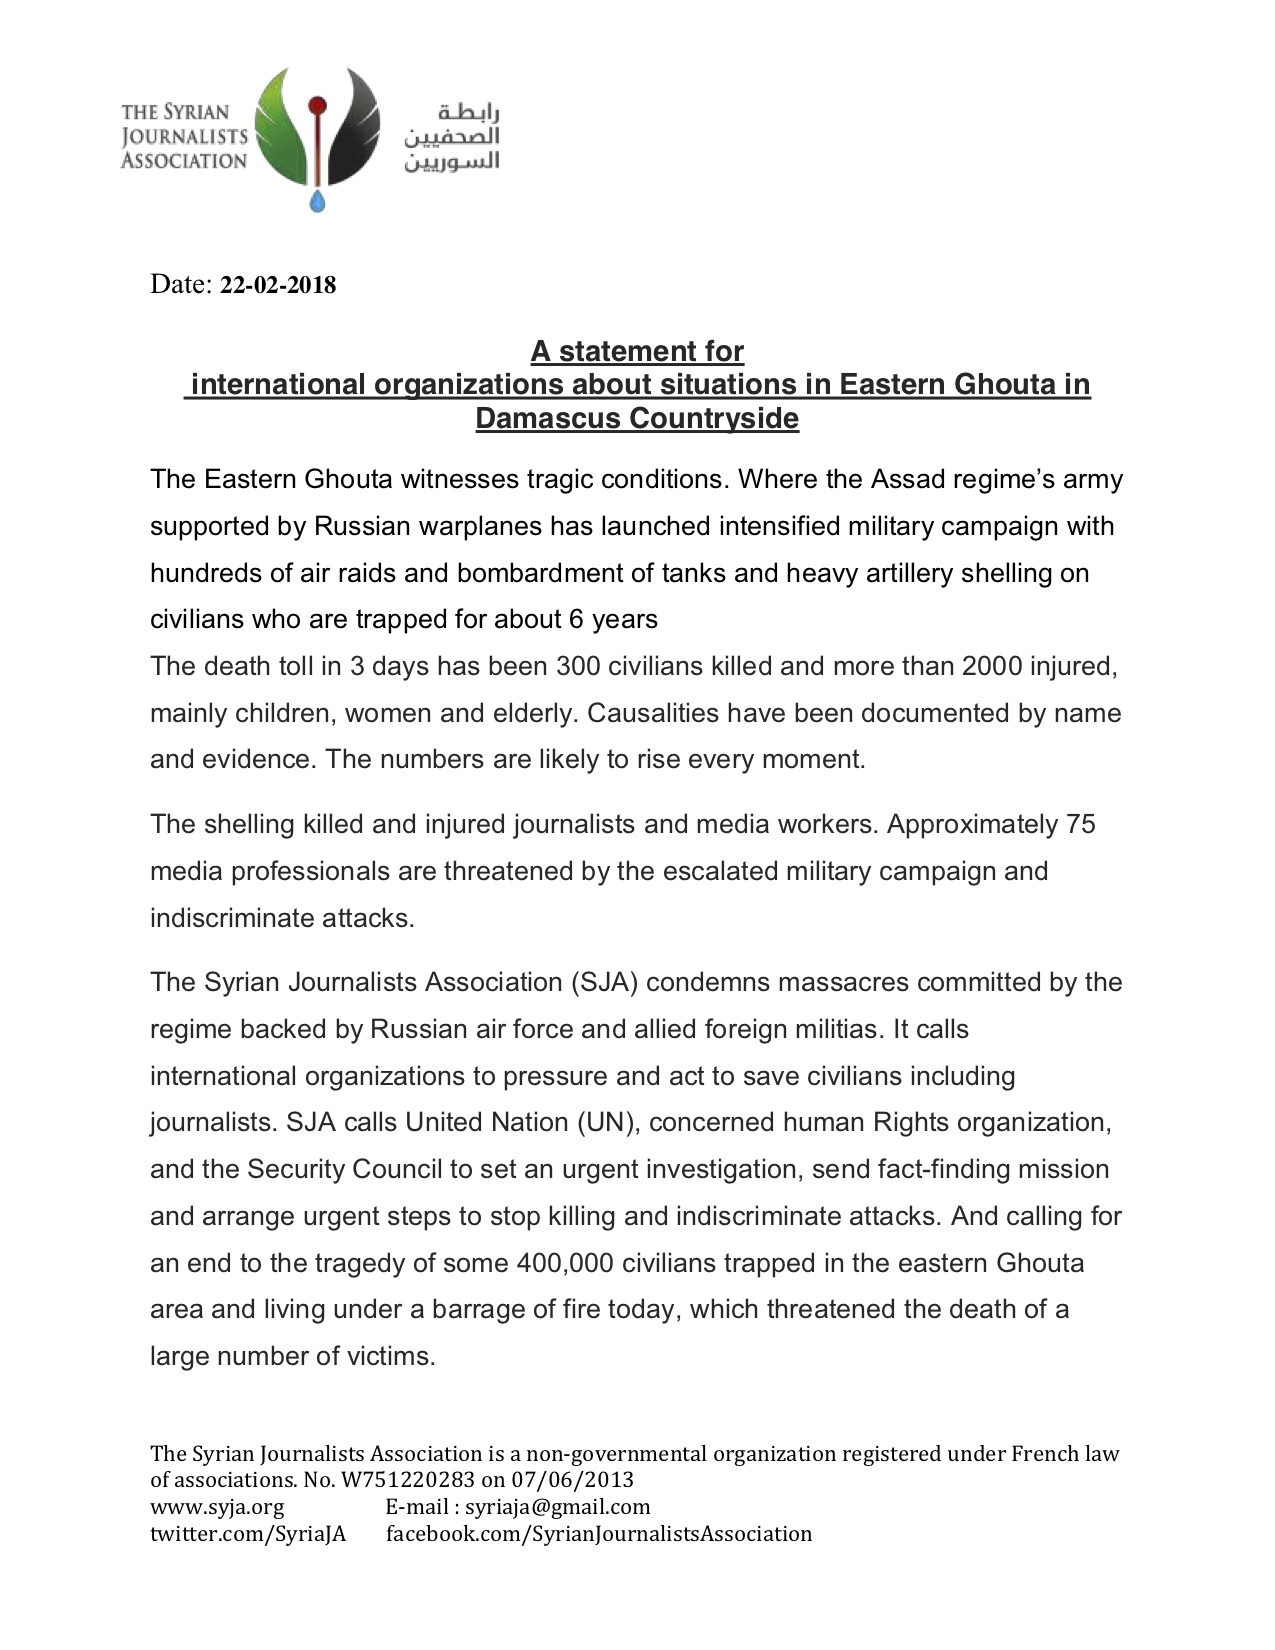 A statement by the Syrian Journalists Association